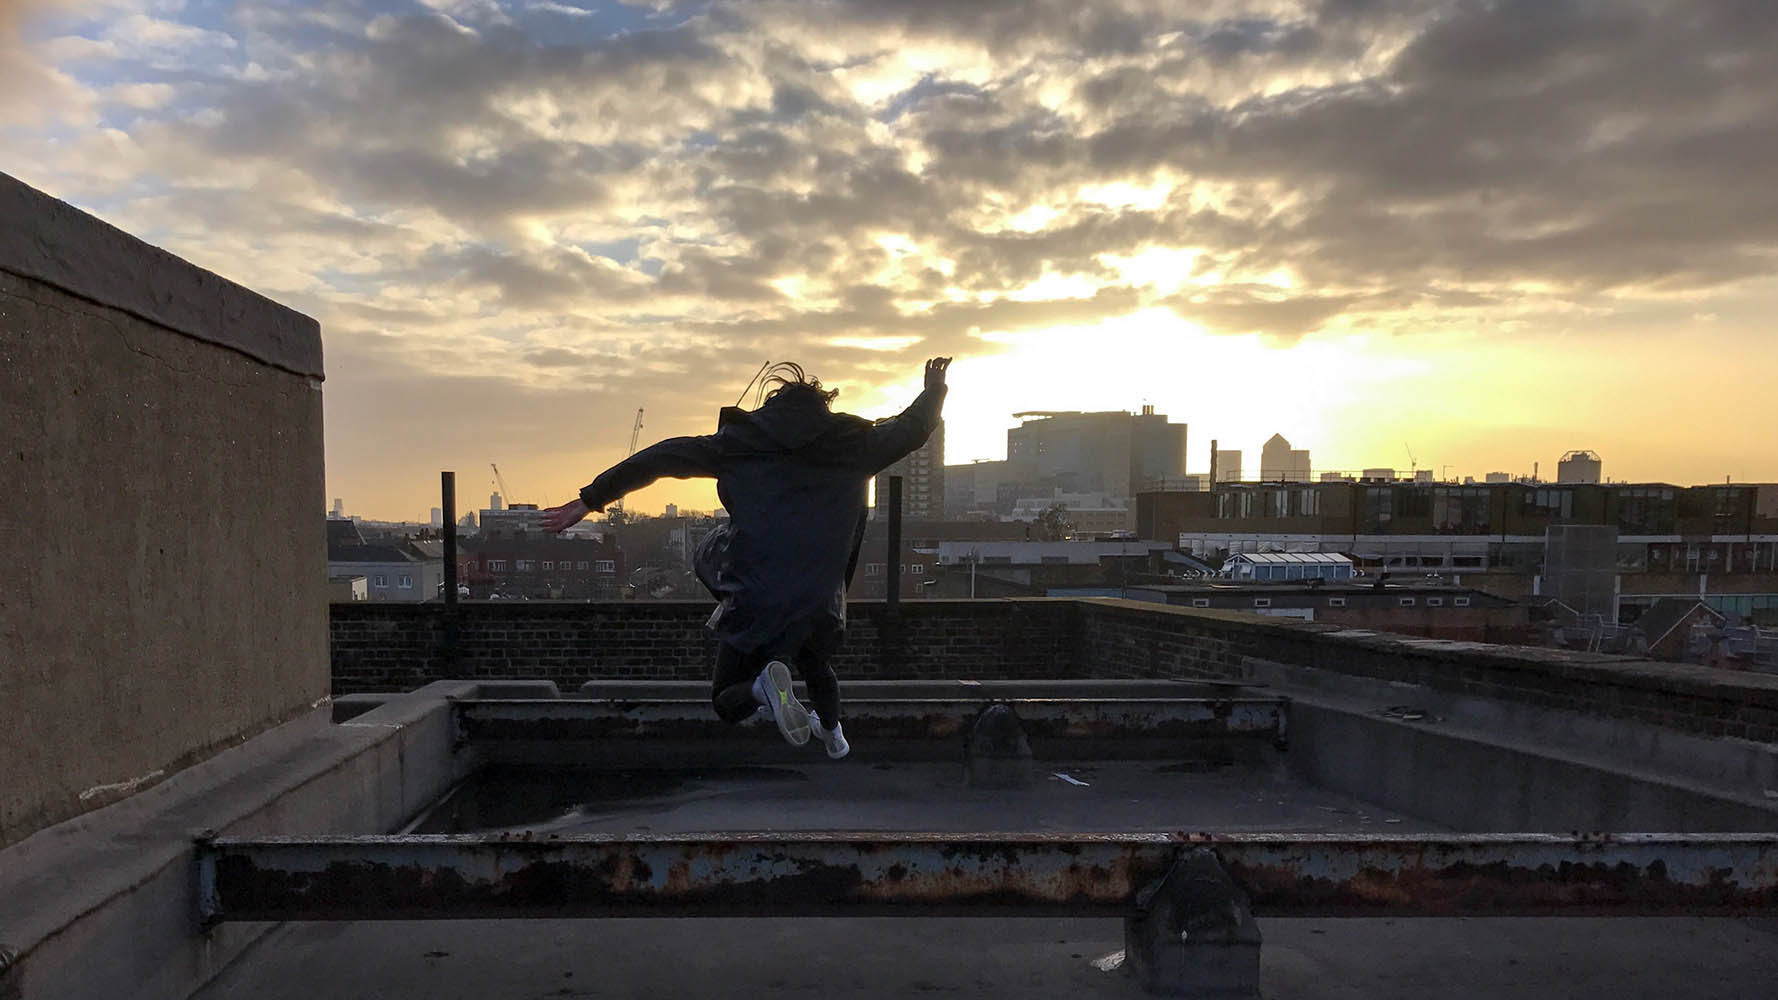 F Block Roof, Filming and Photography locations, Skyline, Roof top, East London